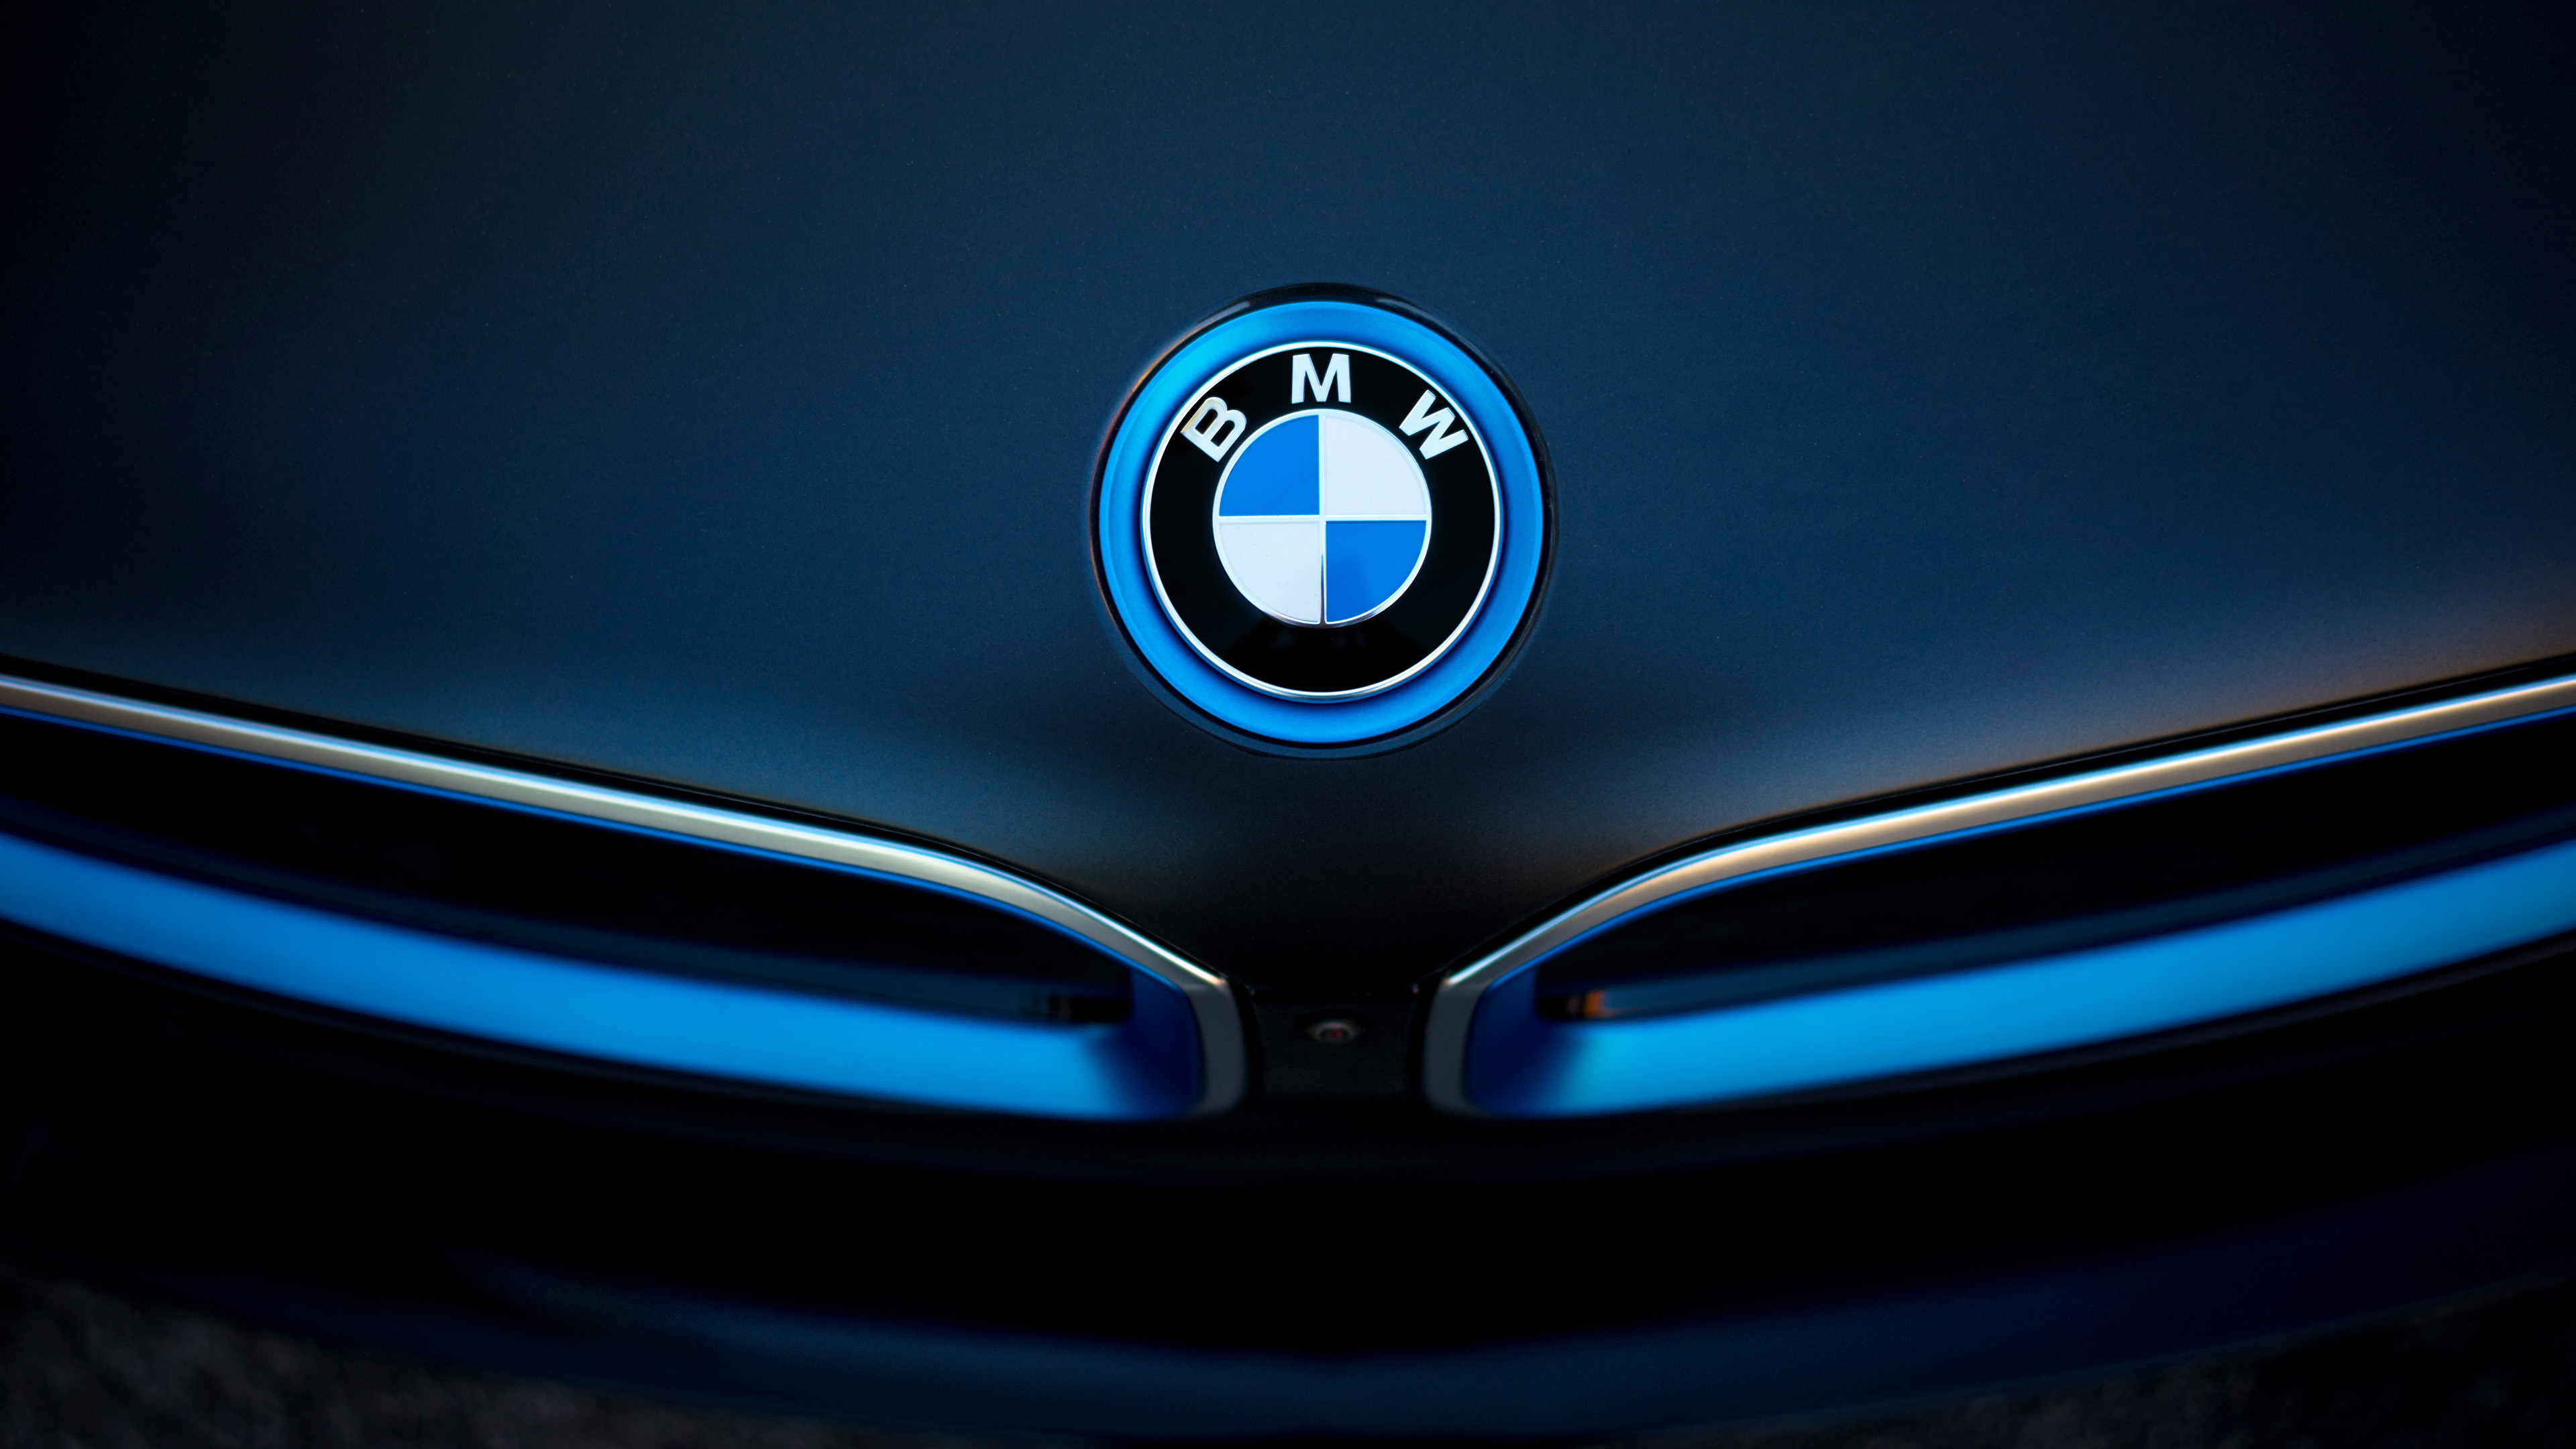 BMW Logo Wallpaper : Find best latest BMW Logo Wallpaper in HD for your PC desktop  background & mobile phones. | Brands and Logo's | Pinterest | Bmw logo, …